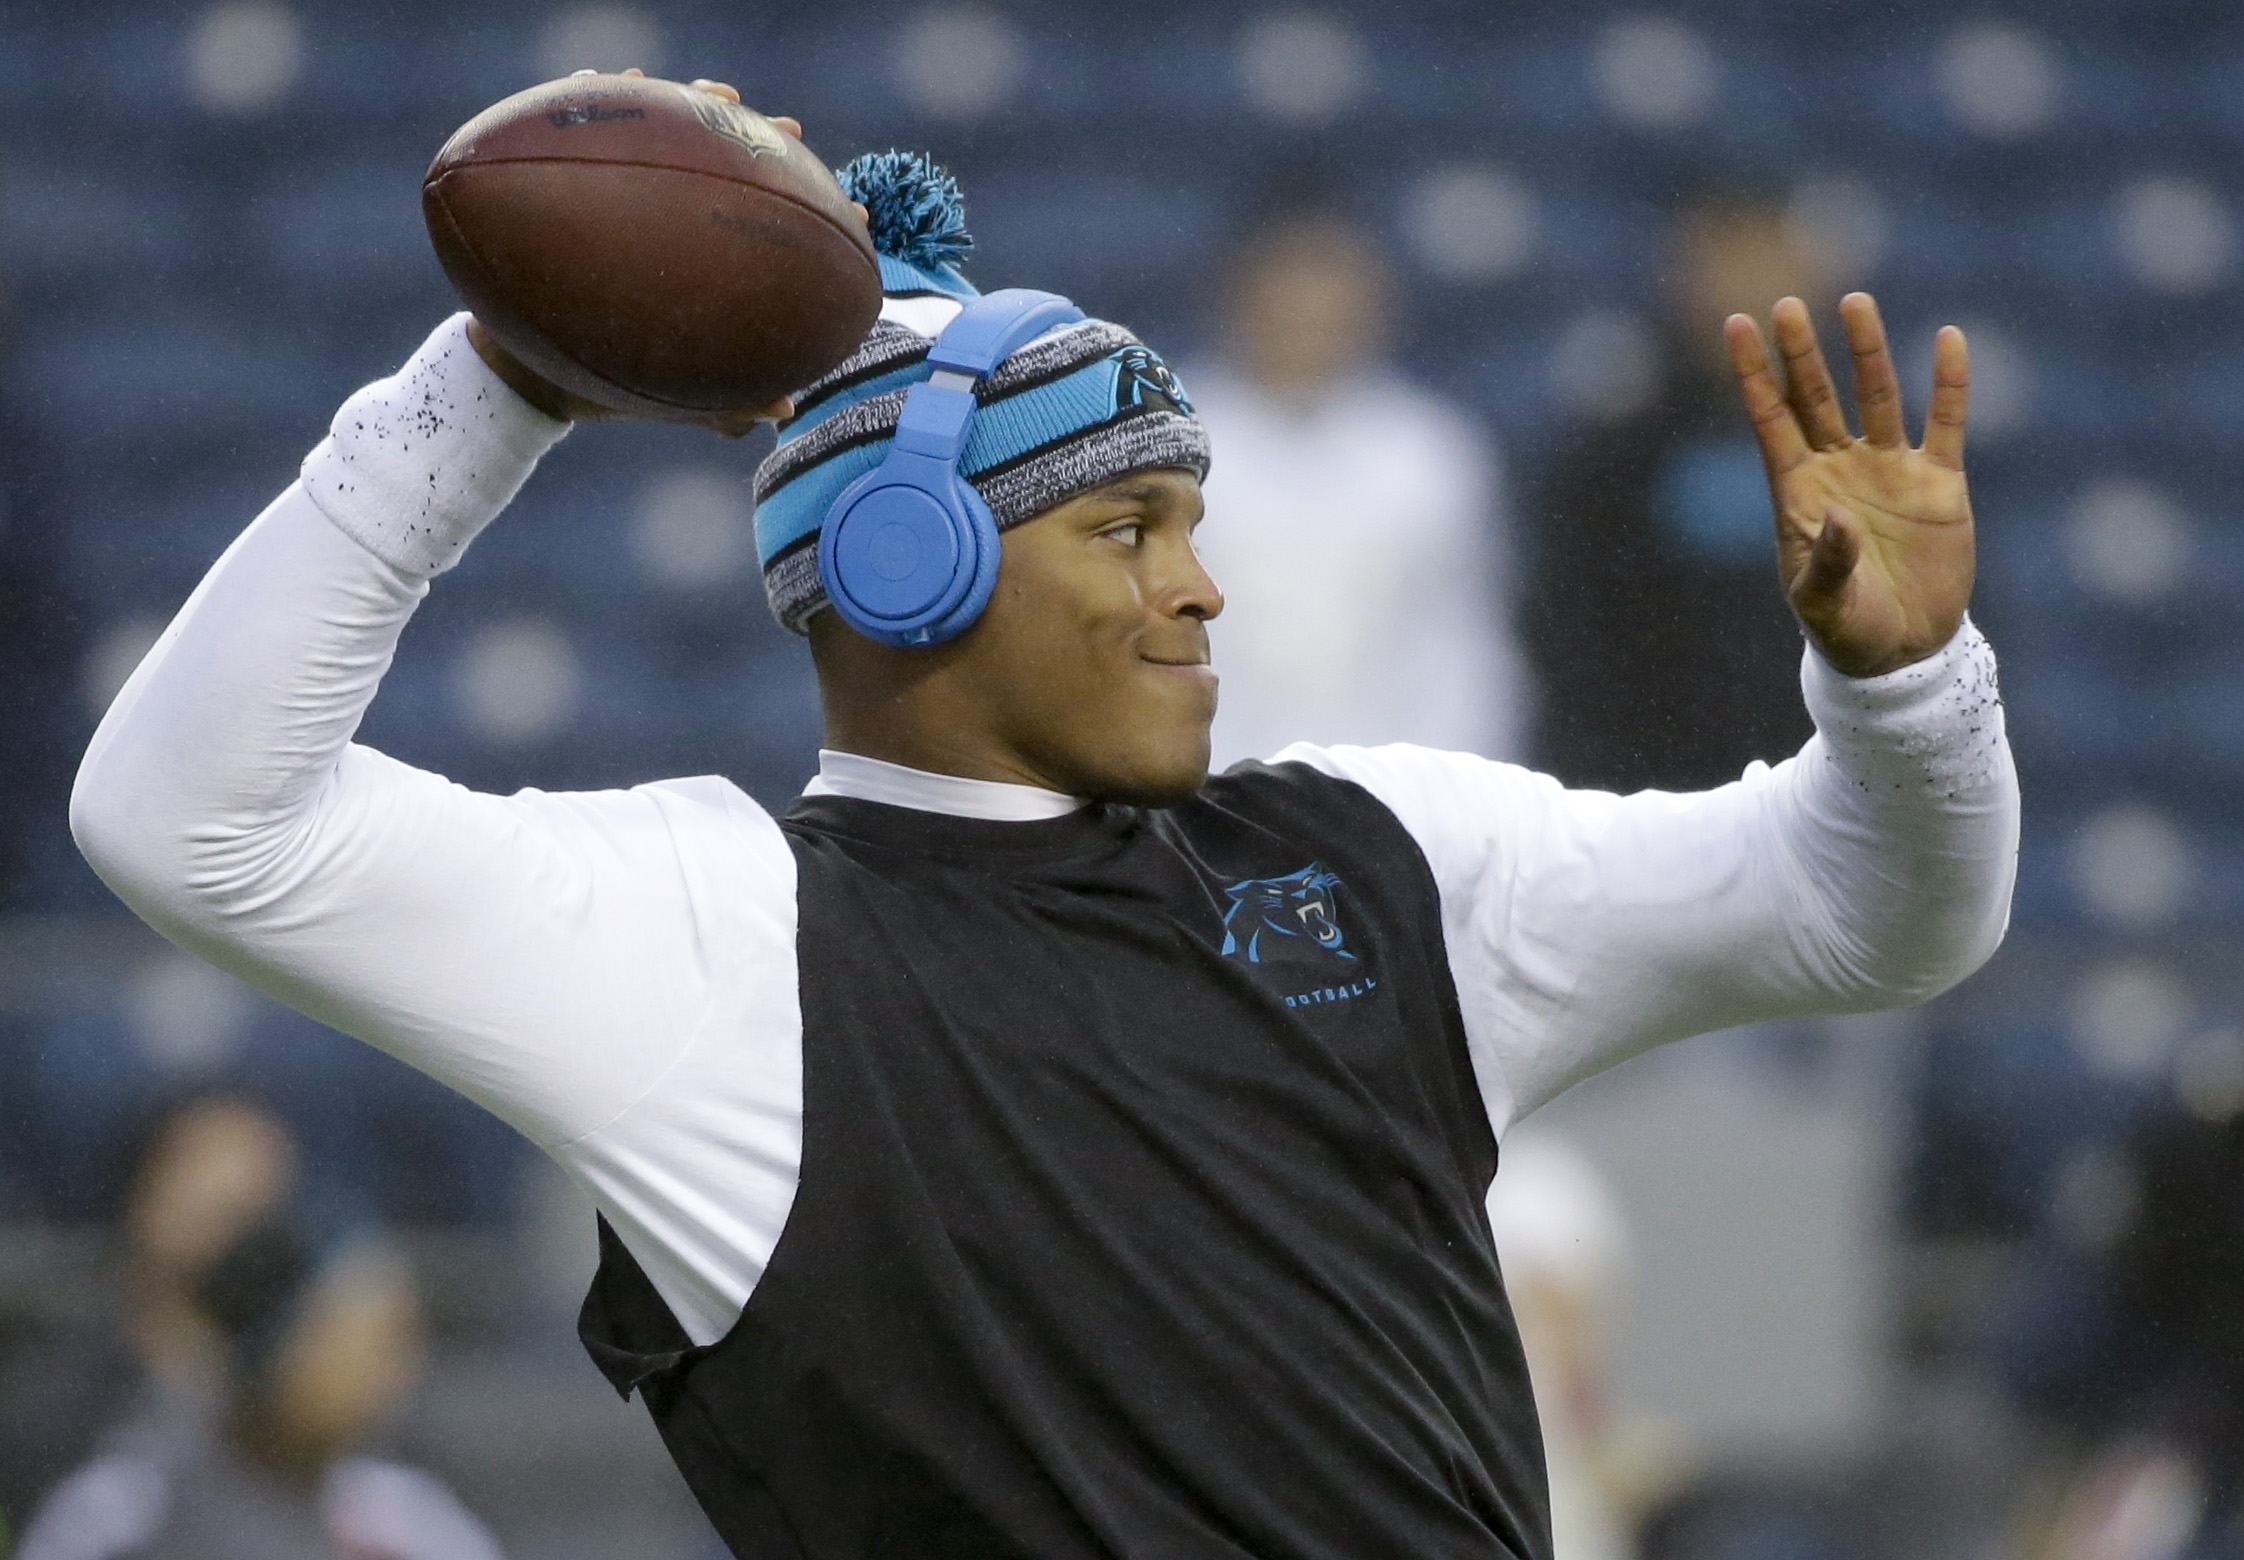 Carolina Panthers quarterback Cam Newton throws before an NFL divisional playoff football game against the Seattle Seahawks in Seattle, Saturday, Jan. 10, 2015. (AP Photo/Elaine Thompson)